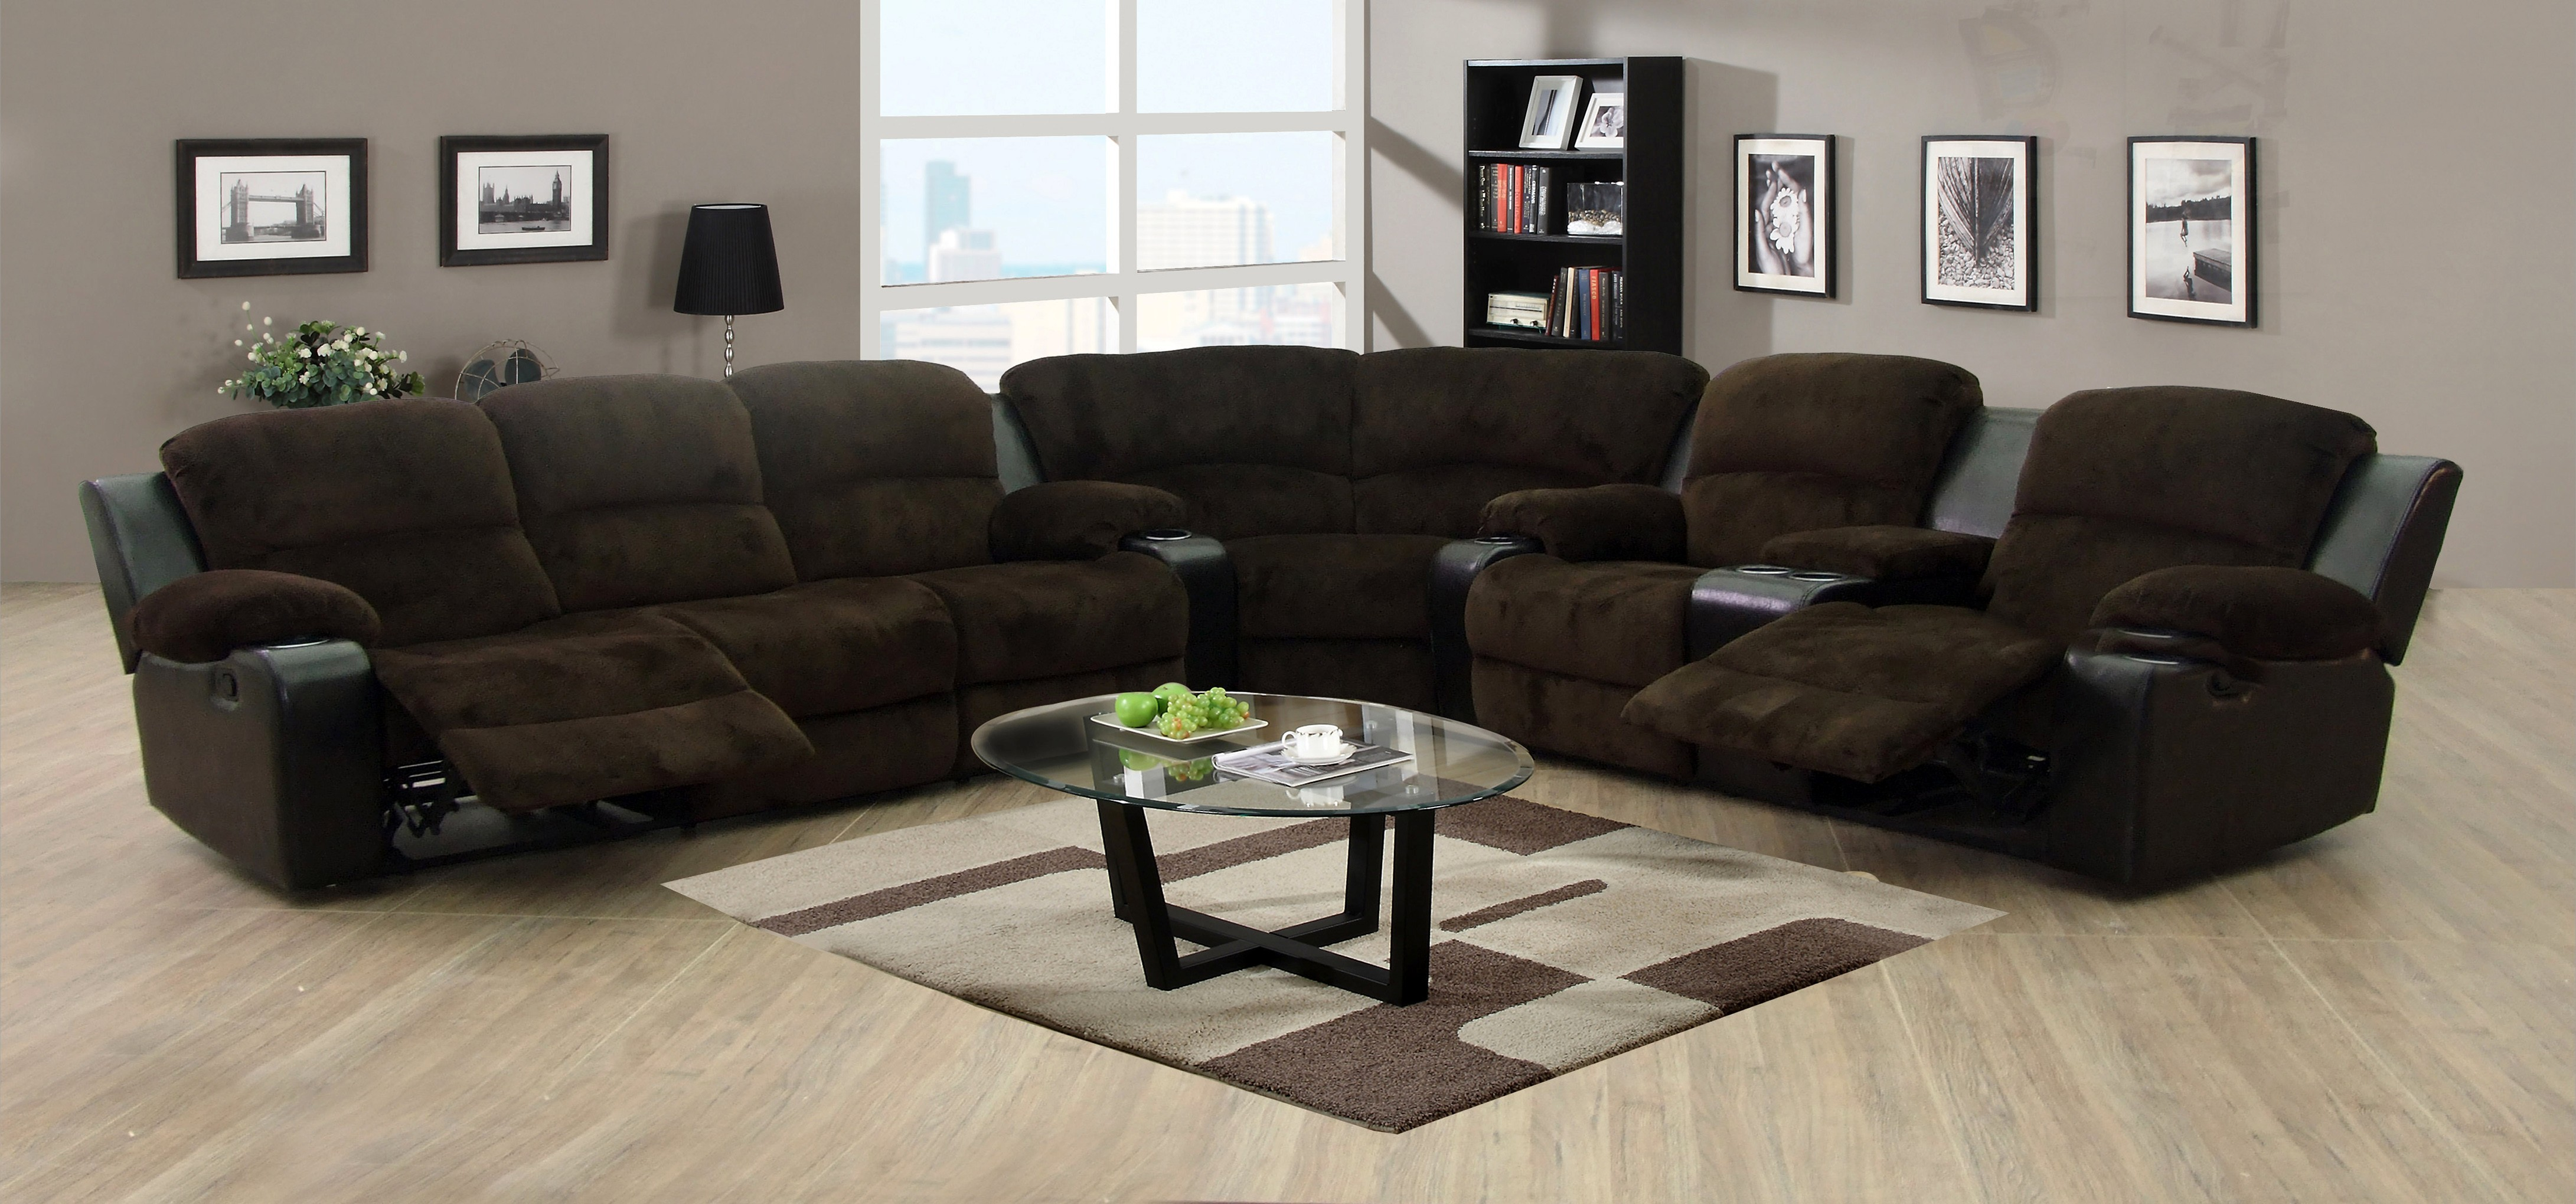 Sectional sofas with Recliners and Cup Holders Best Elegant Sectional sofas with Recliners and Cup Holders with Inspiration